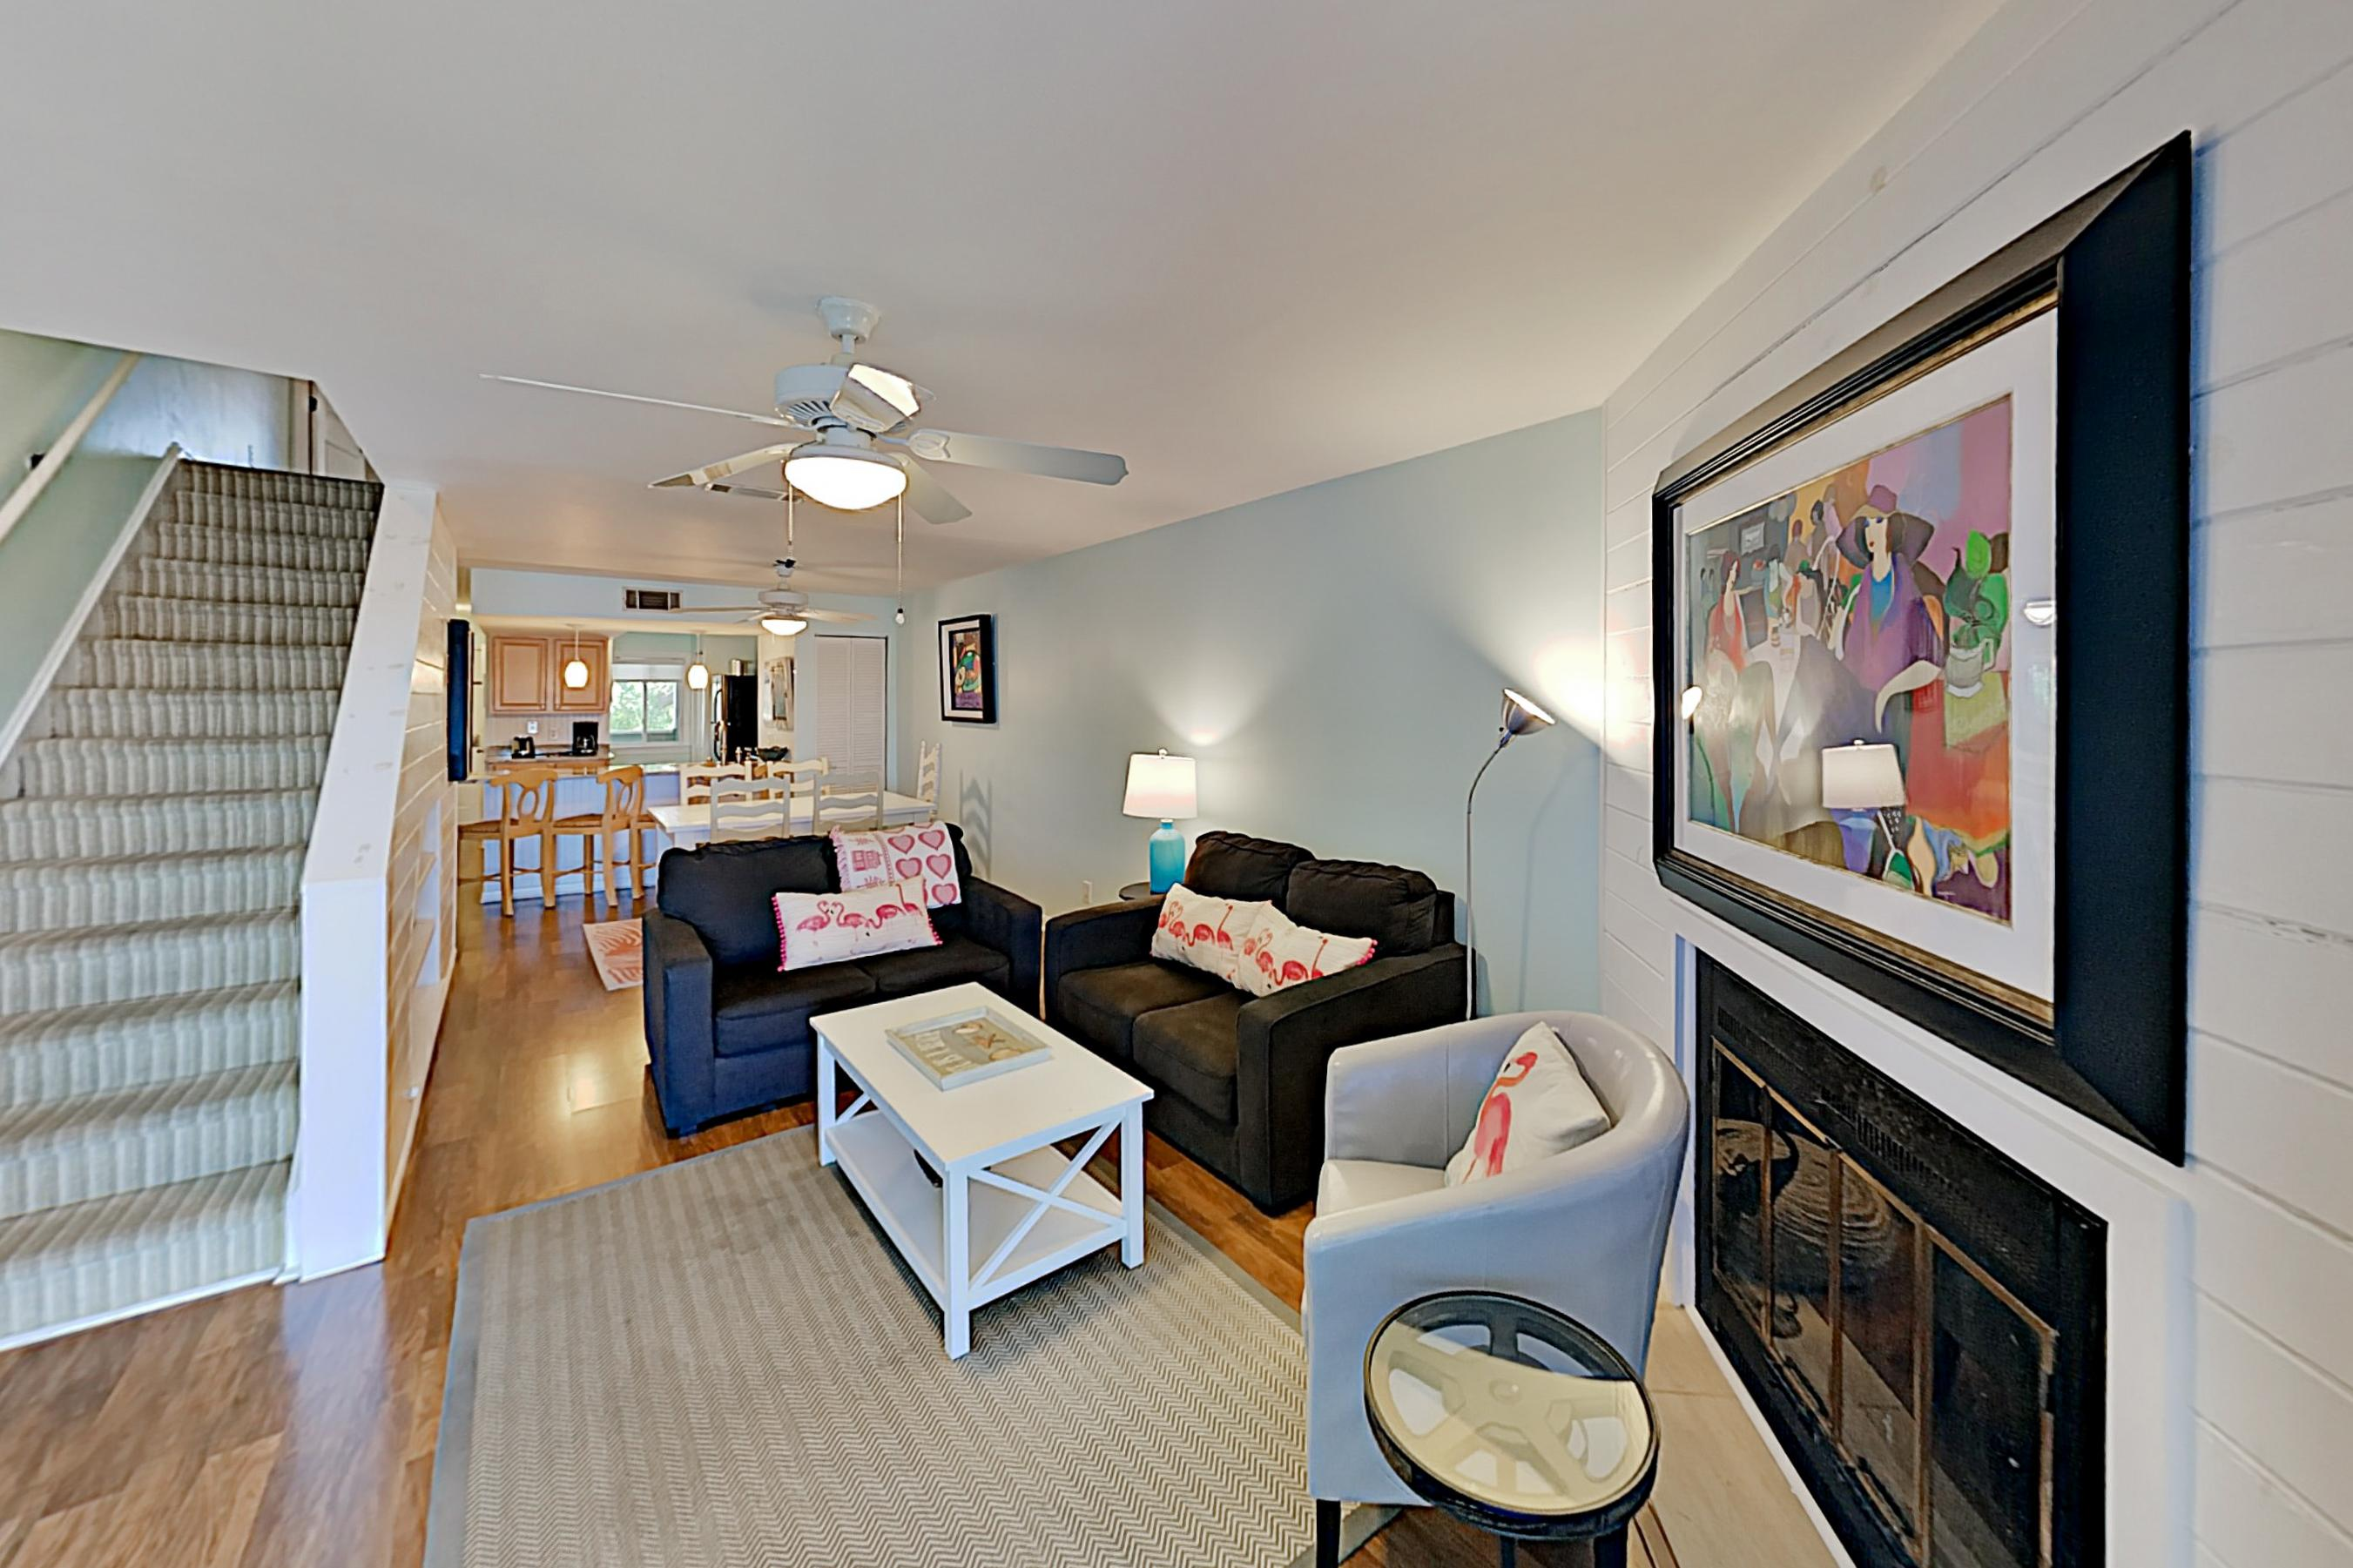 Welcome to Folly Beach! This Mariners Cay condo is professionally managed by TurnKey Vacation Rentals.